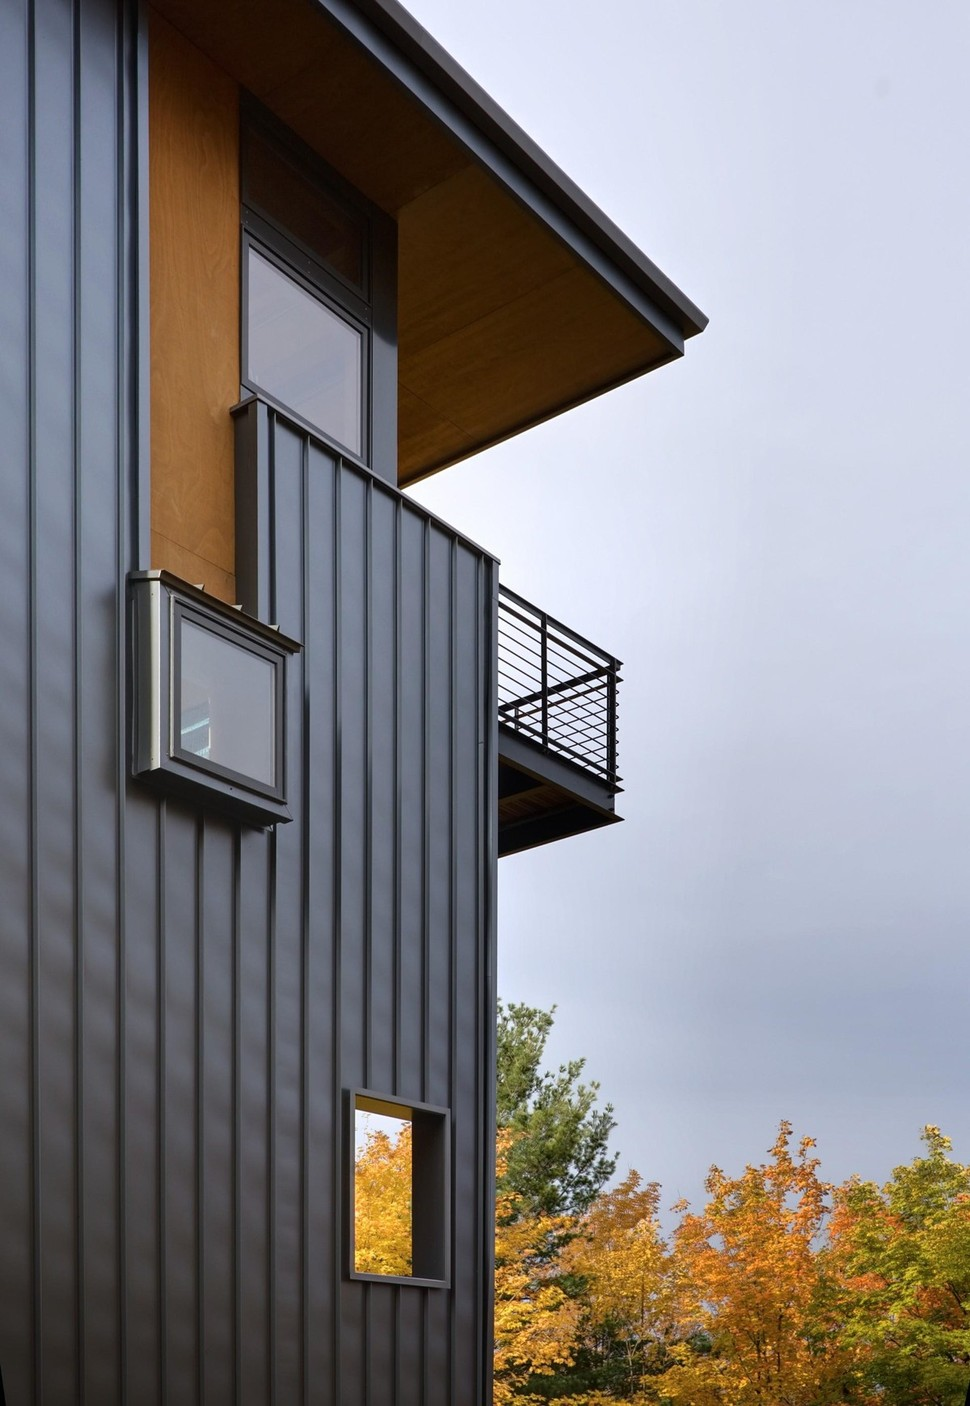 Design Of House Windows Modern Doors And: 4-Storey Tall House Reaches Above The Forest To See The Lake